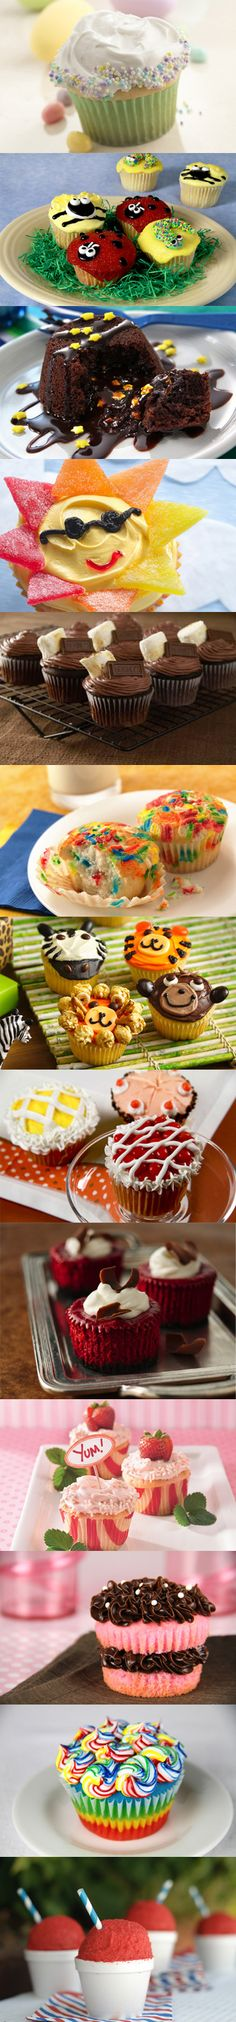 LOTS of fun Cupcake ideas!